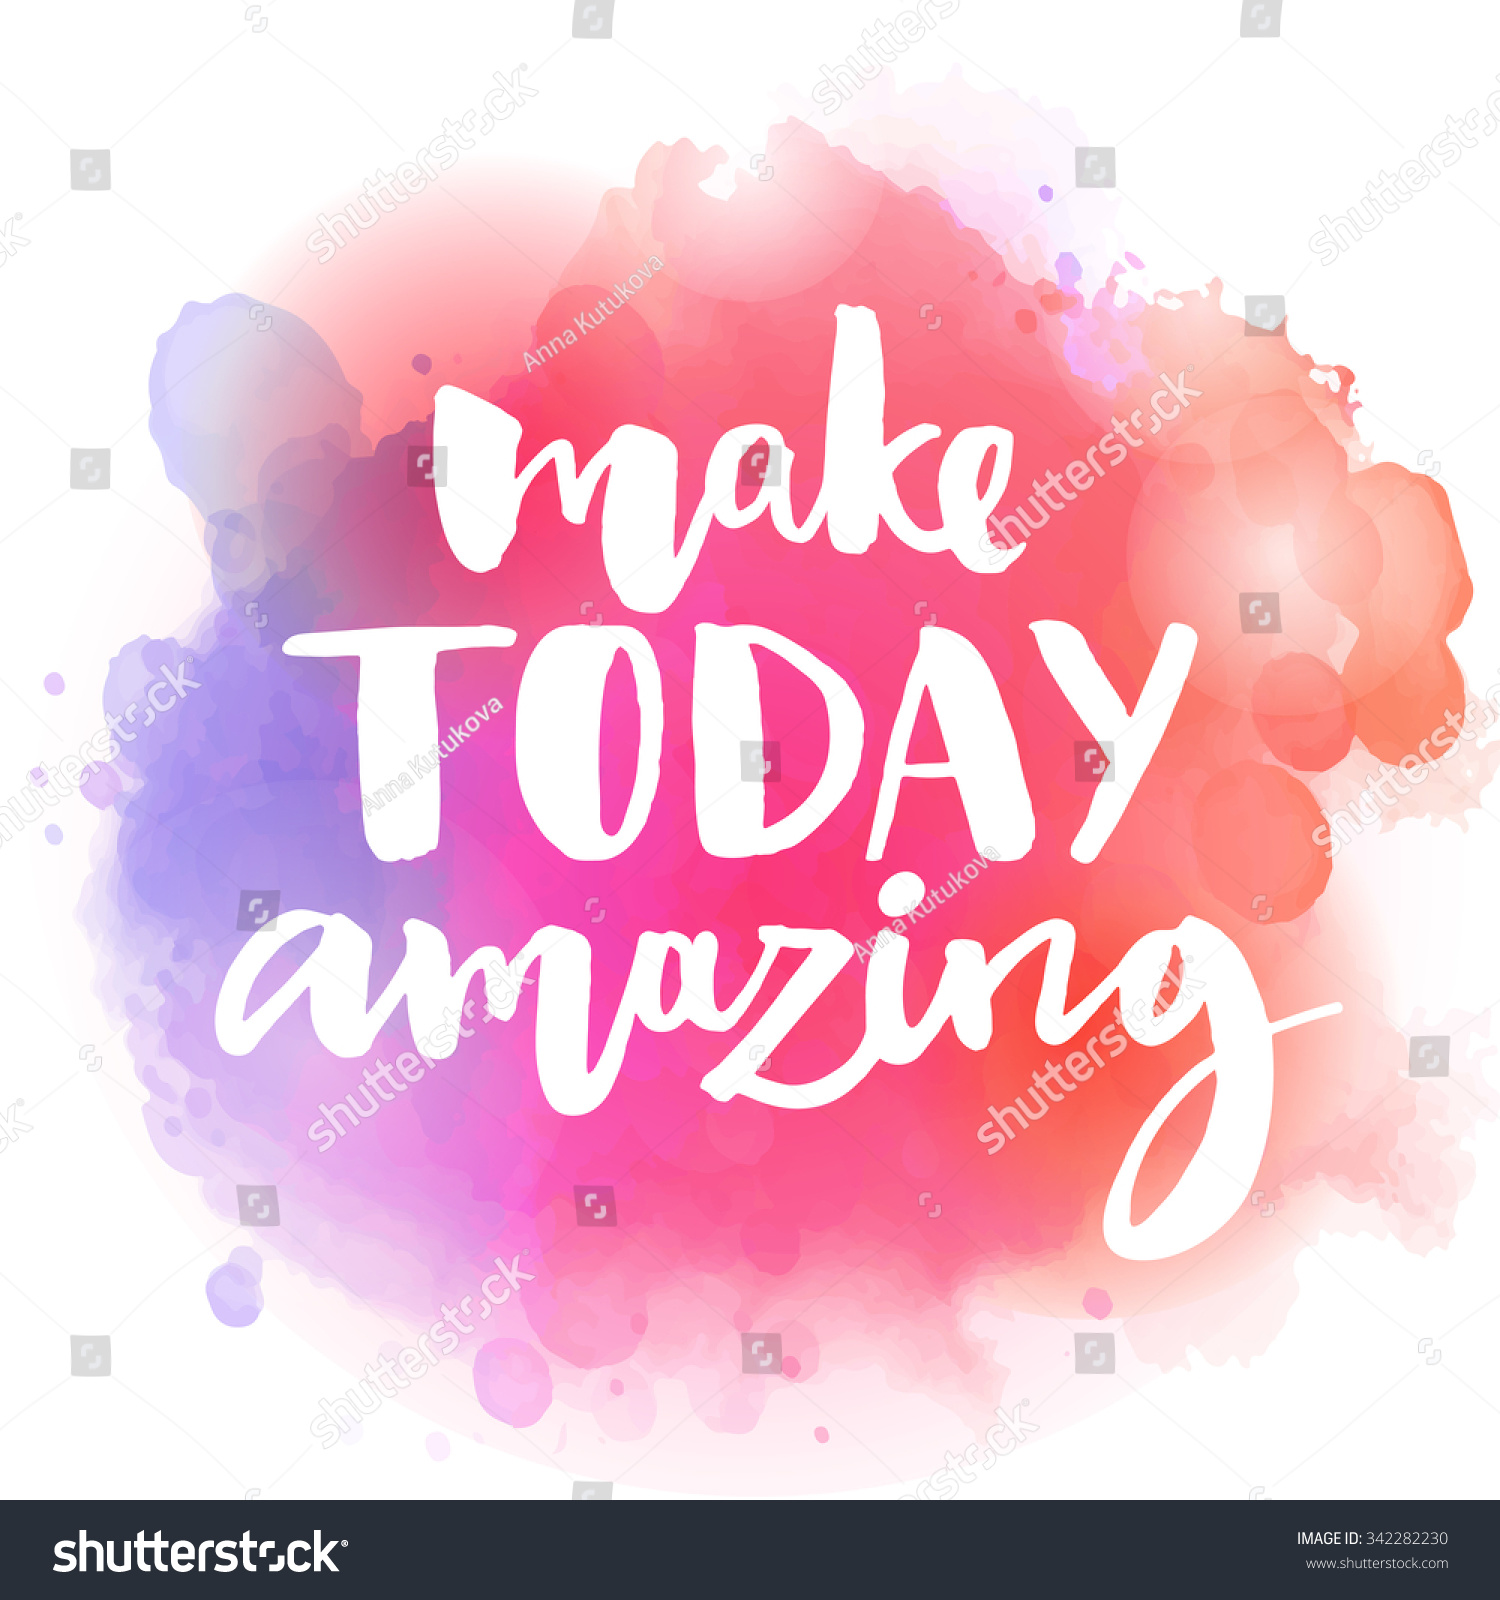 colourful Love Quotes Wallpaper : Make Today Amazing Inspirational Quote colorful Stock Vector 342282230 - Shutterstock